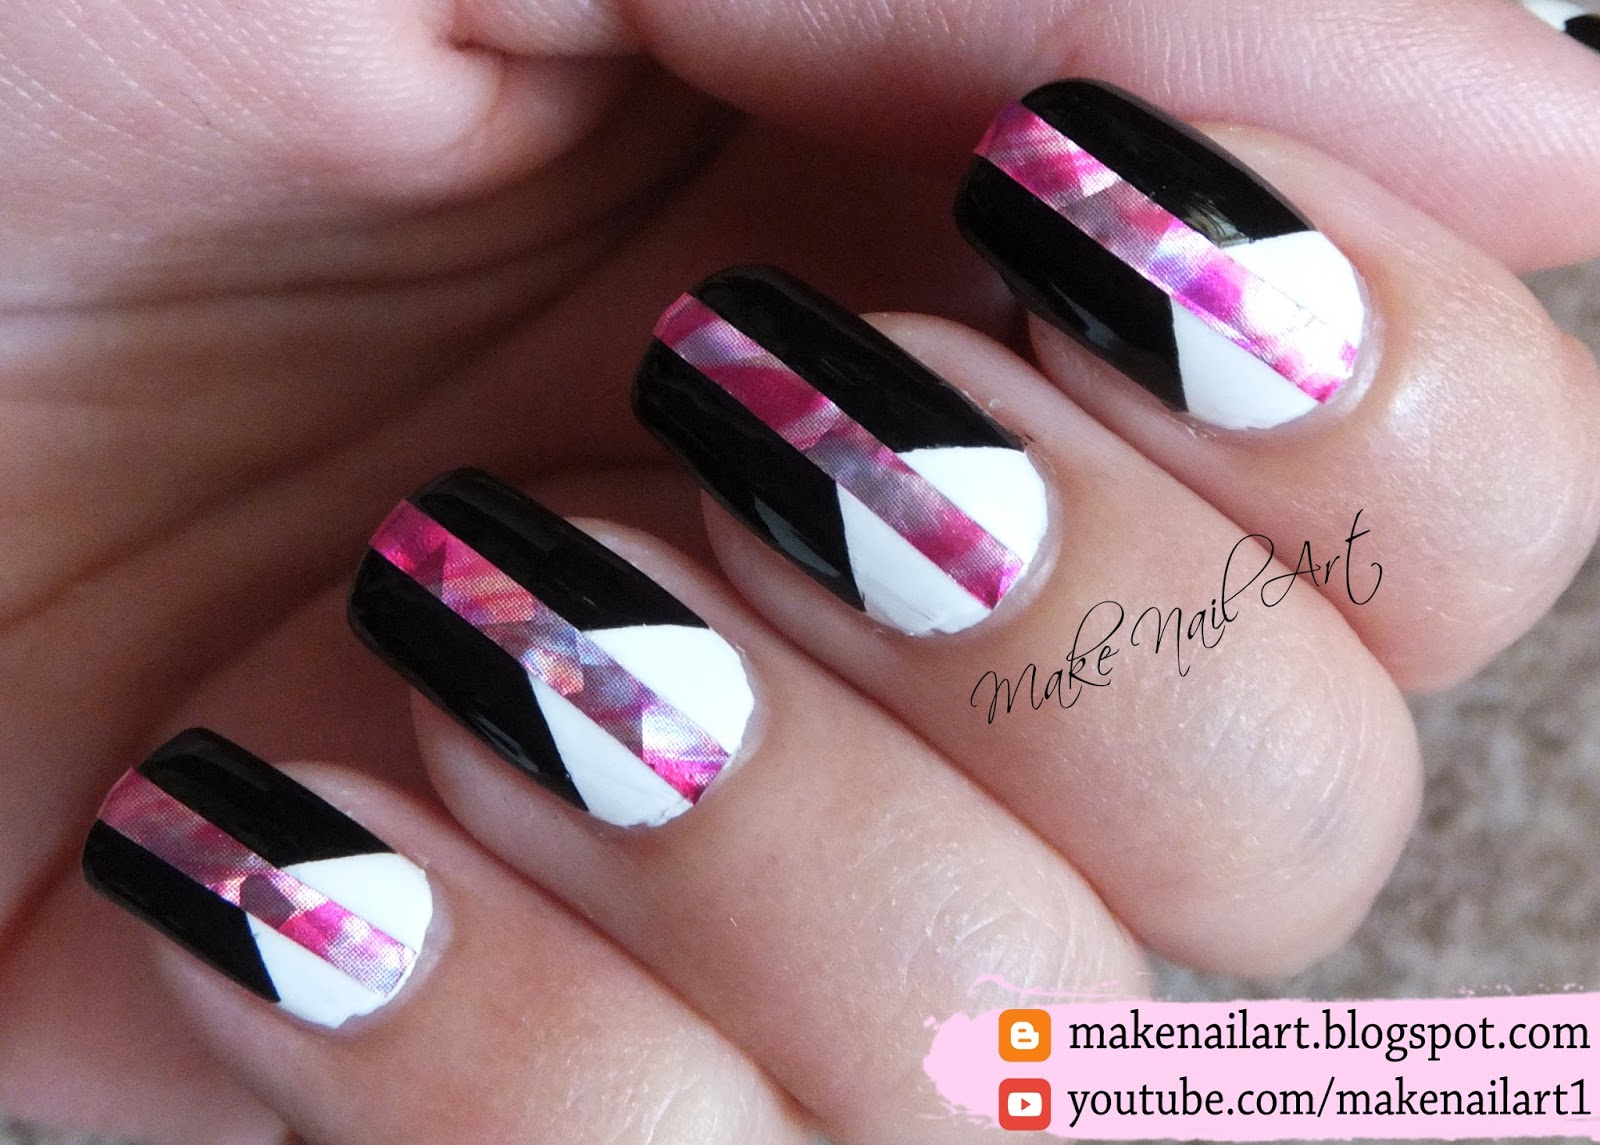 Make Nail Art: Easy Black And White Nails With Holographic Accent ...